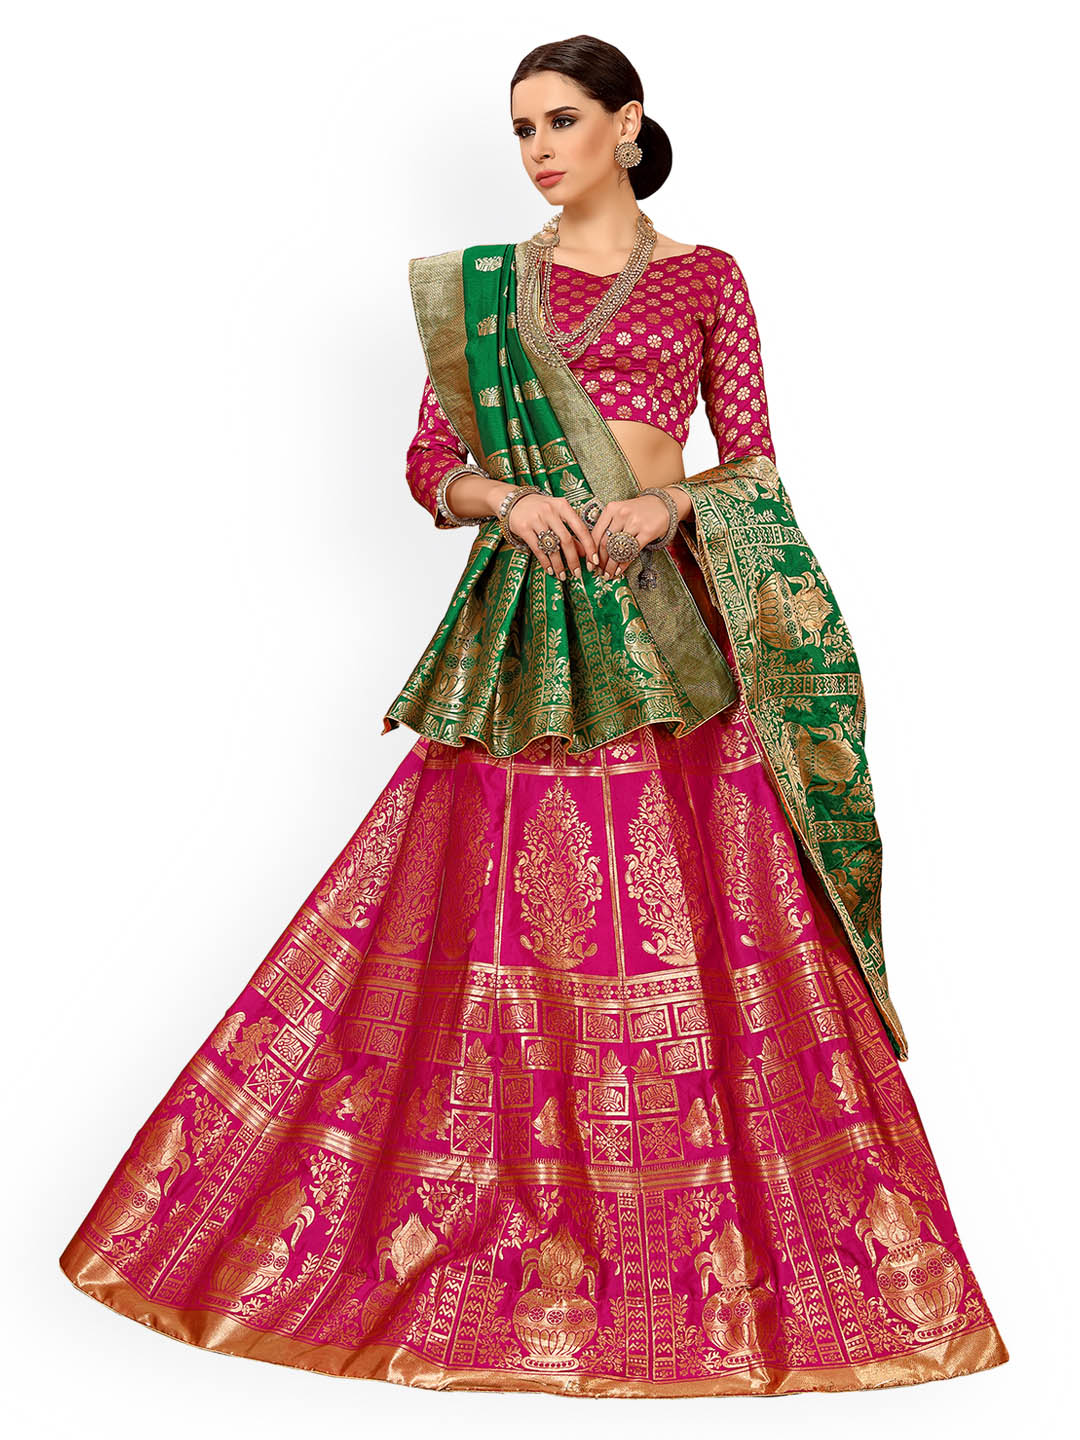 Chhabra 555 Magenta & Green Embellished Silk Unstitched Lehenga & Blouse with Dupatta Price in India